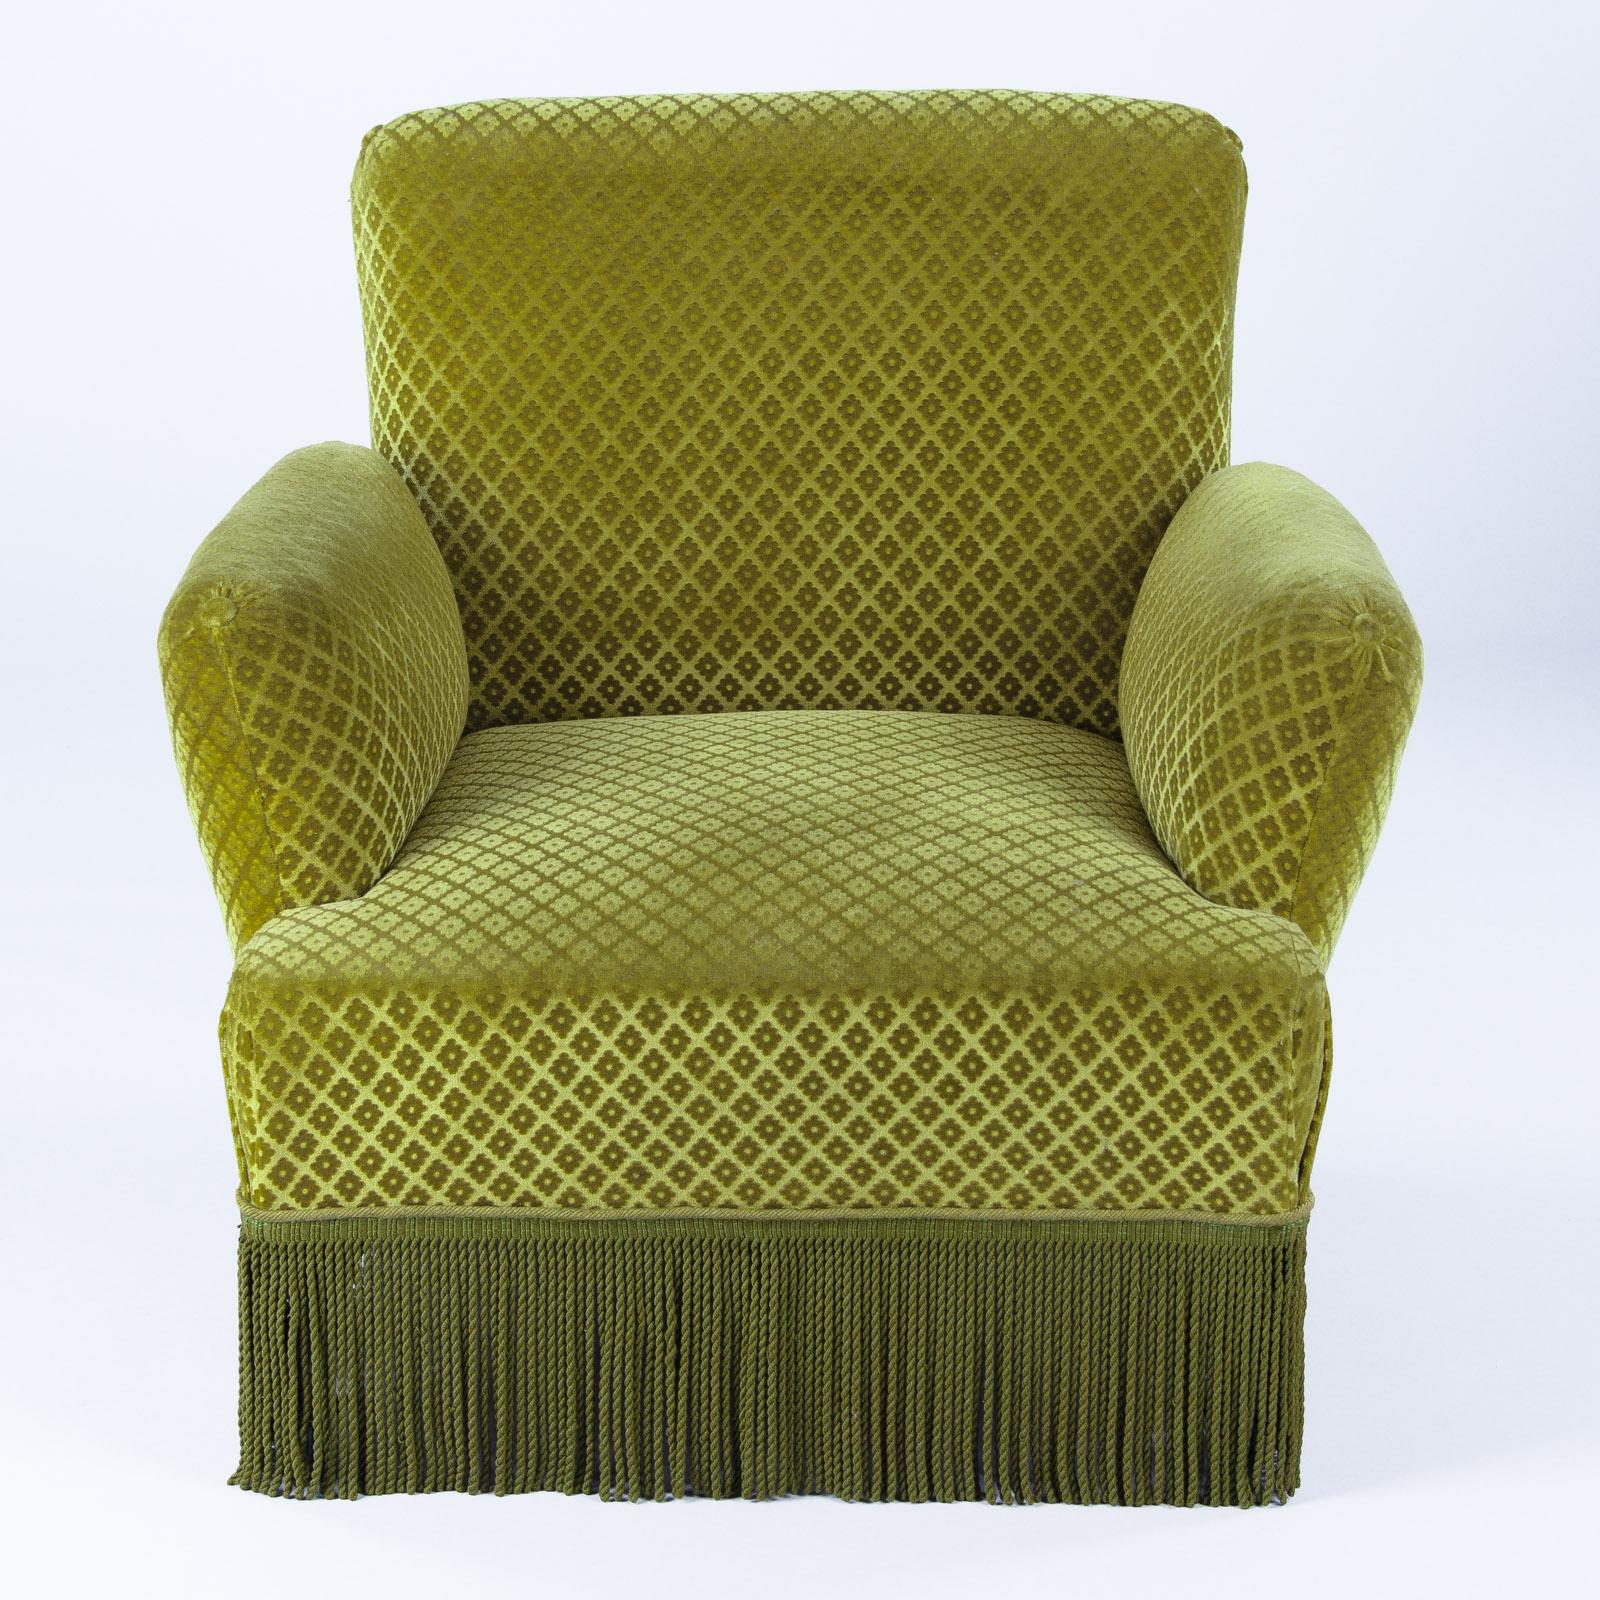 Overstuffed Armchairs For Sale Pair Of Napoleon Iii Style Green Upholstered Armchairs